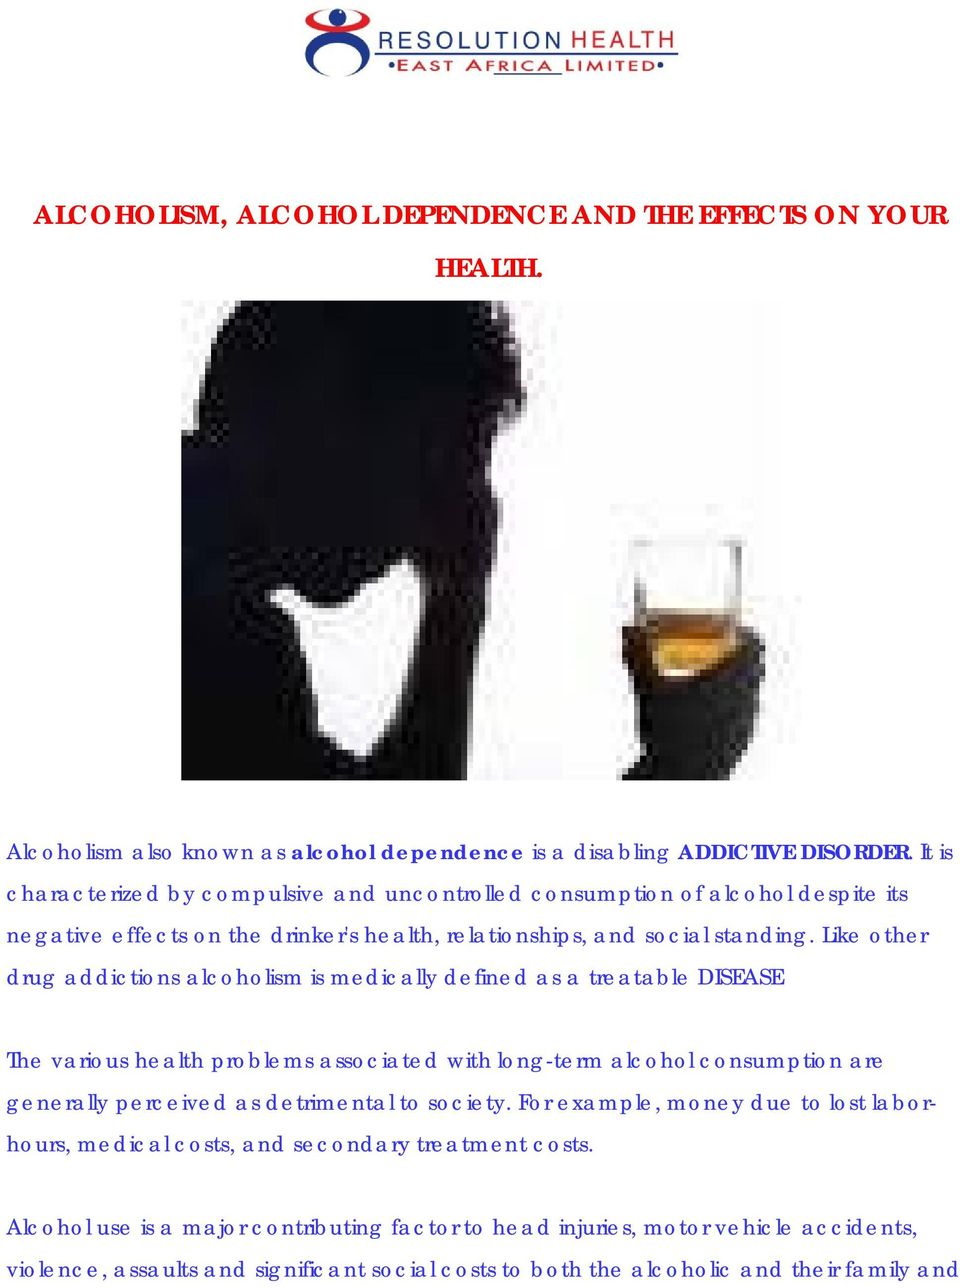 Like other drug addictions alcoholism is medically defined as a treatable DISEASE The various health problems associated with long-term alcohol consumption are generally perceived as detrimental